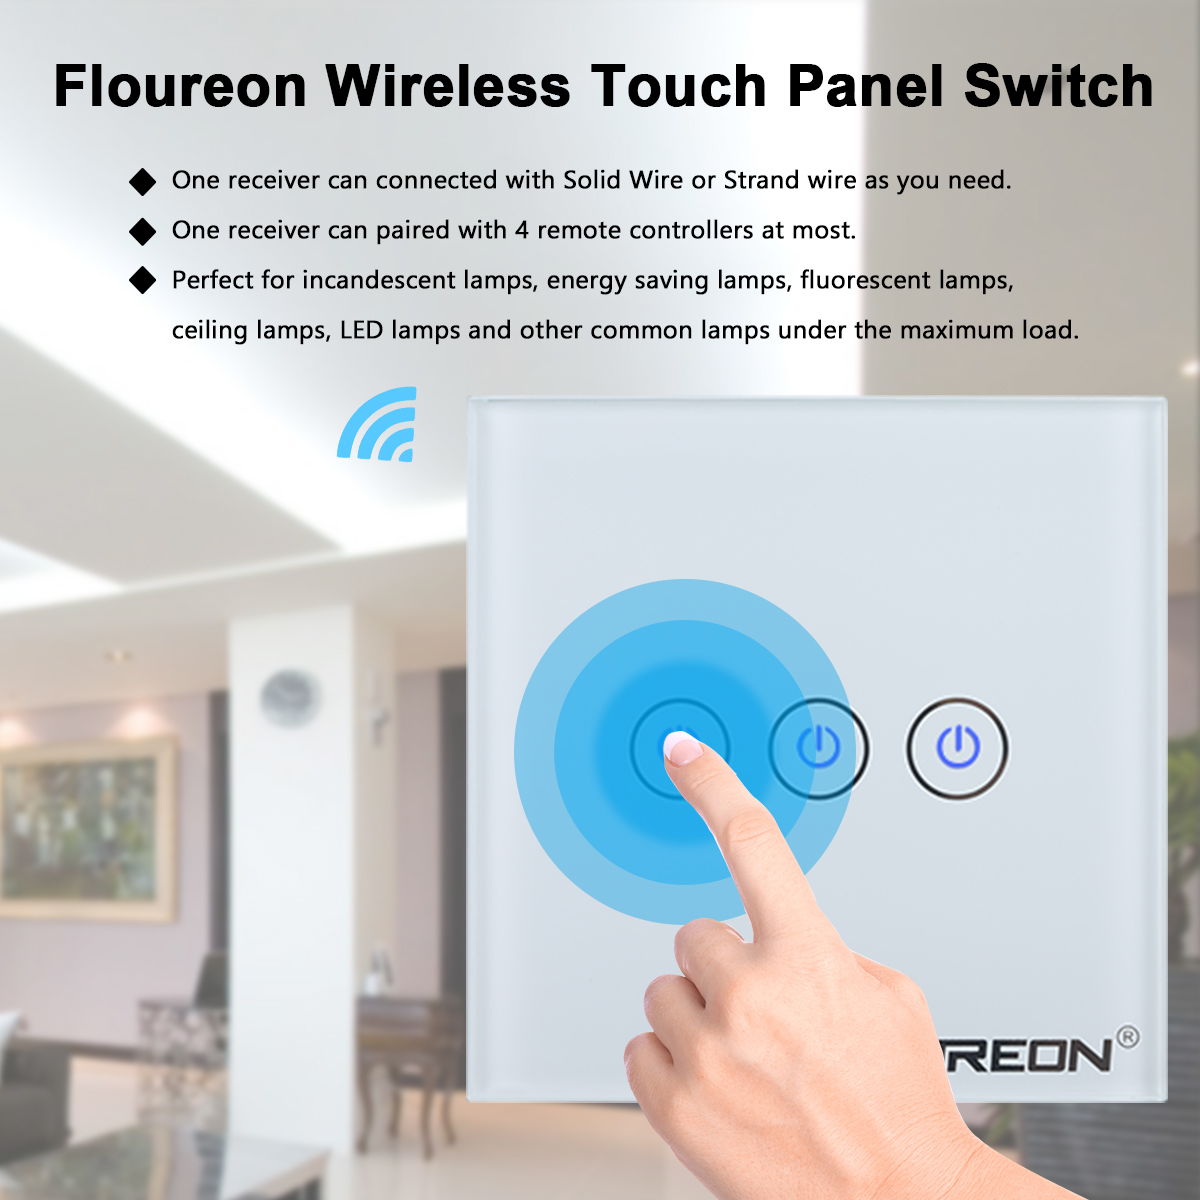 Smart Rf Wireless Remote Control Home Wall Light Lamp Switch Way 3 Ceiling With No Wiring Needed Floureon Gang 1 Blue Led Is A Perfect Improving Your Contemporary And Stylish House